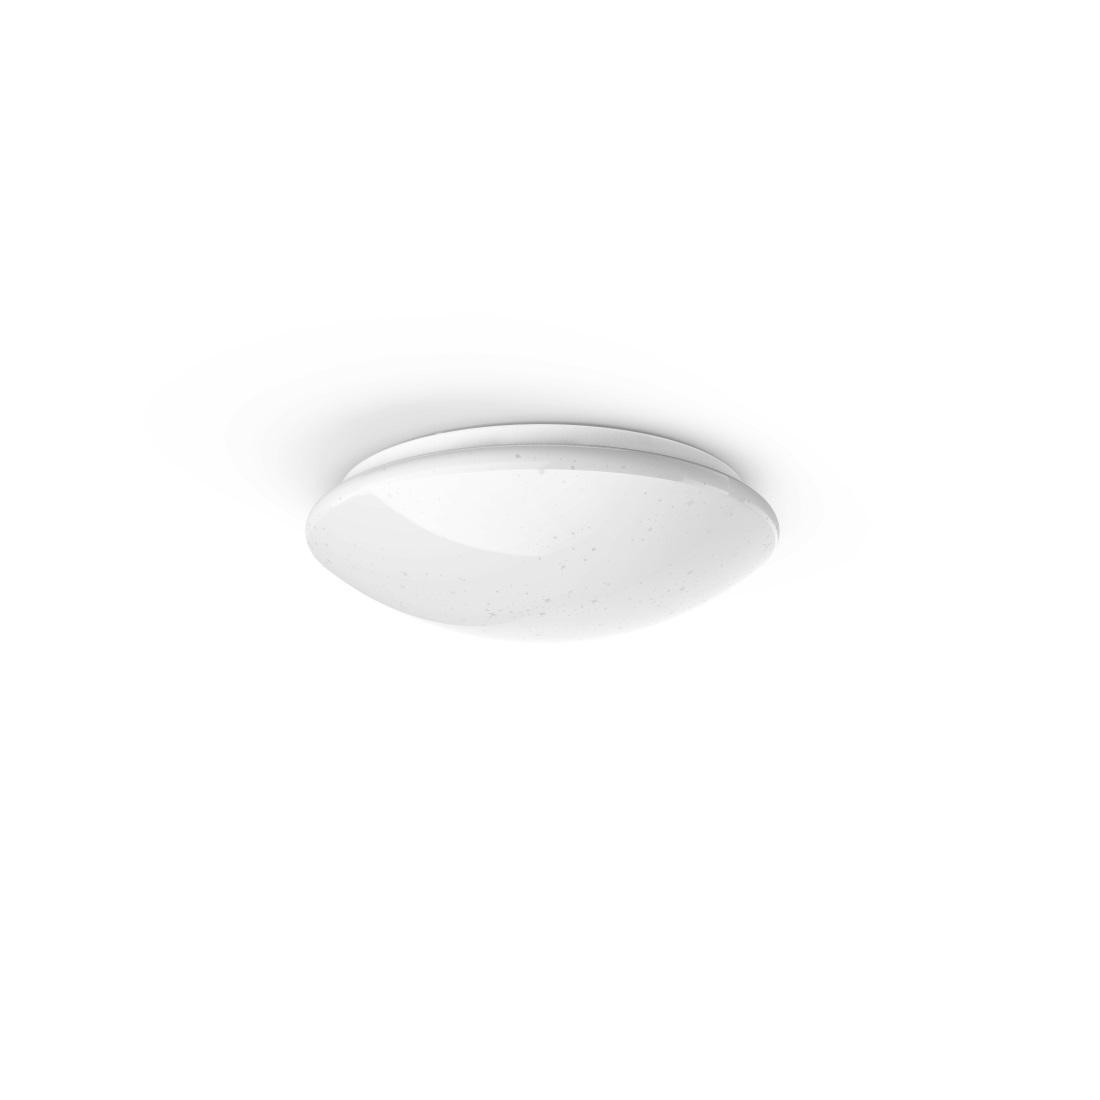 Лампа  за таван(аплик) HAMA Ceiling Light, WiFi, диаметър 30 см